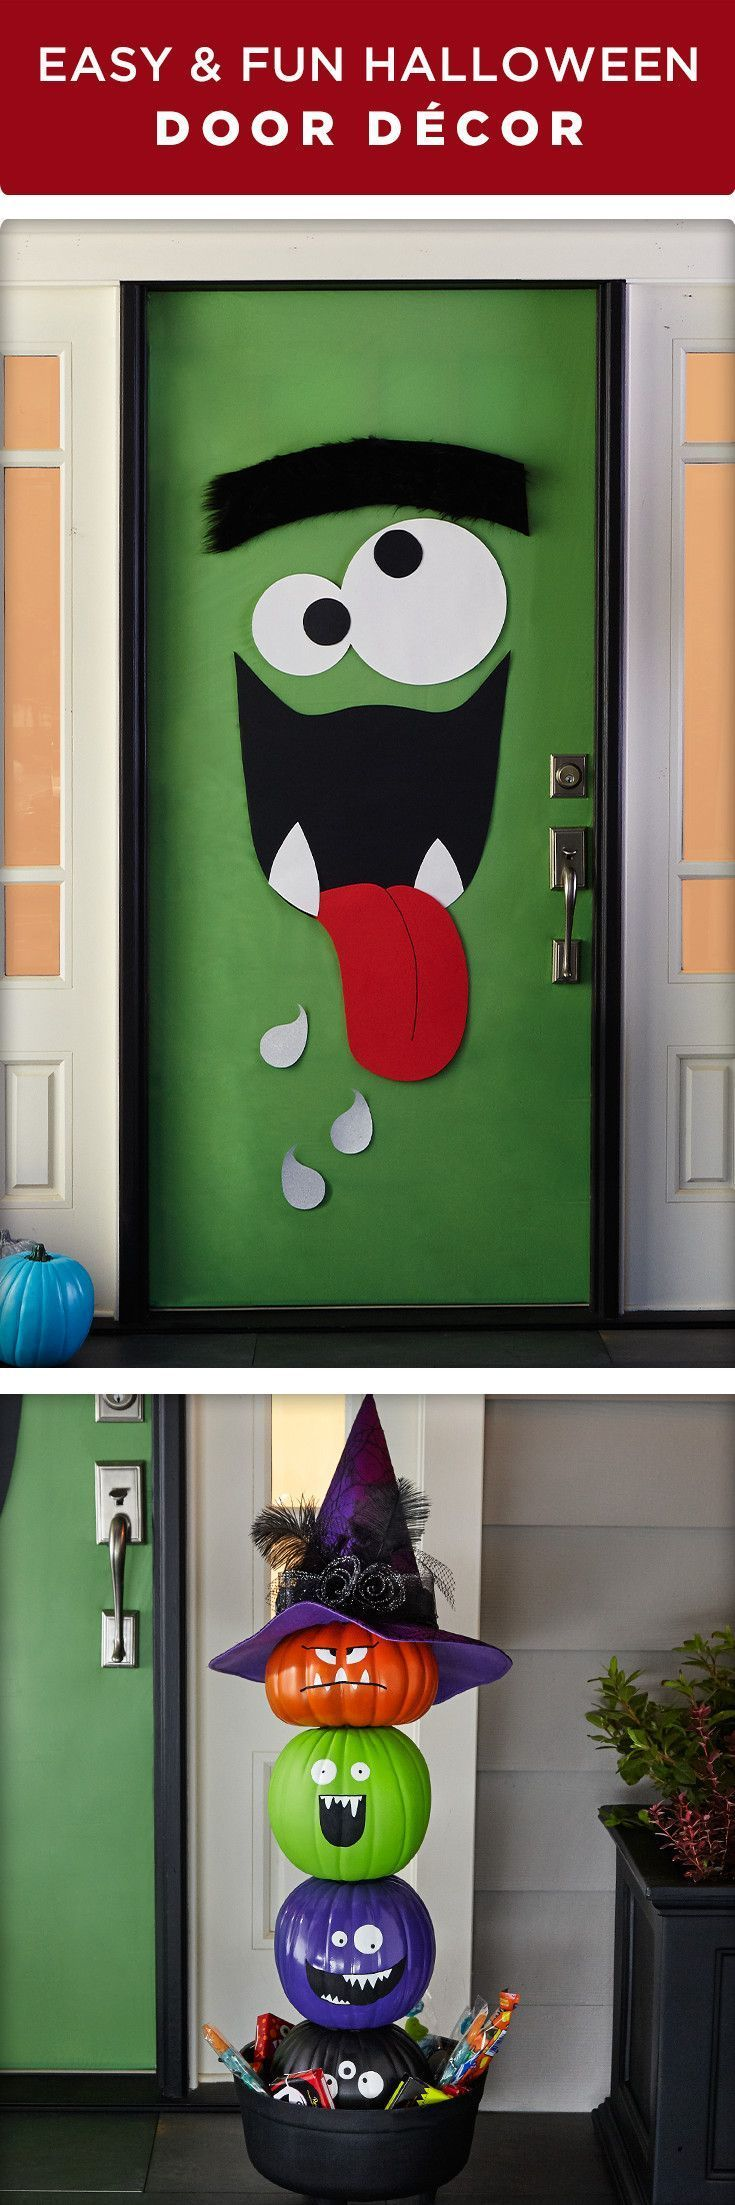 Decorate your front door for trick or treaters this Halloween These